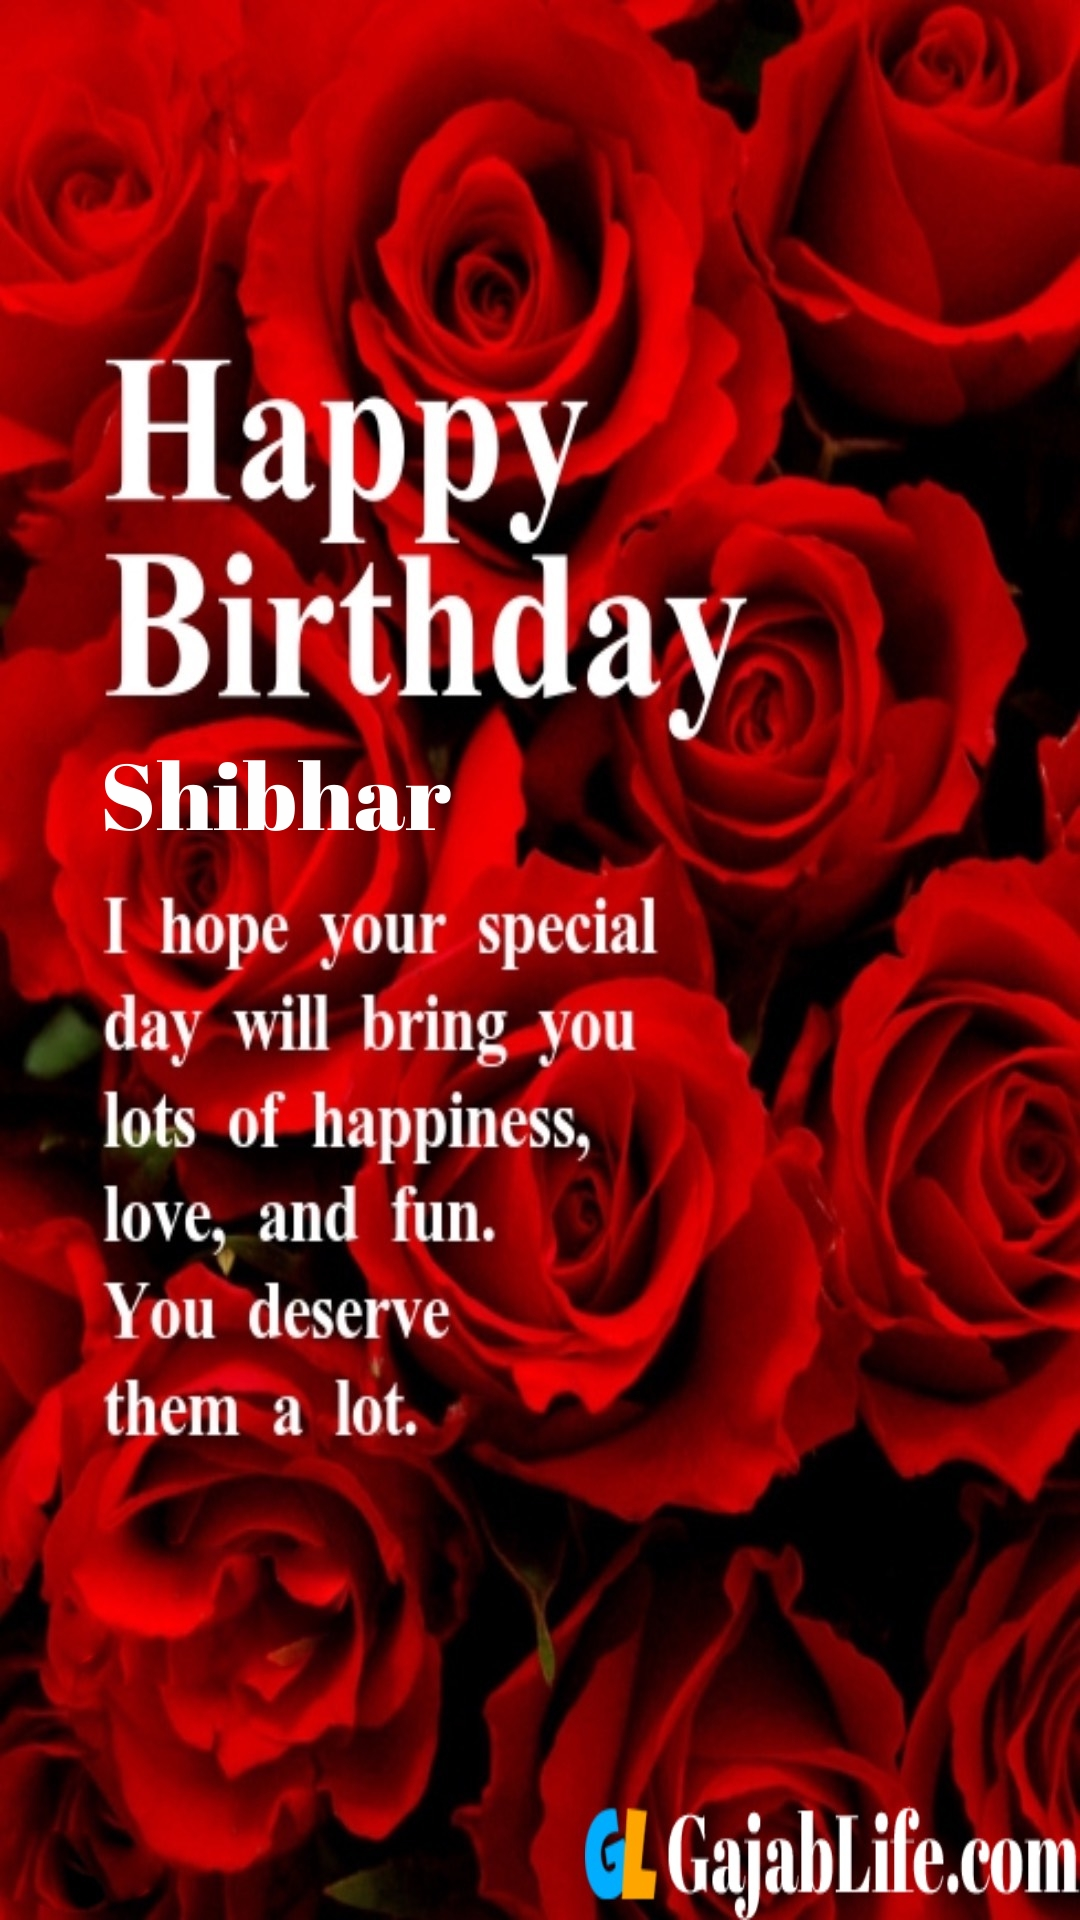 Shibhar birthday greeting card with rose & love